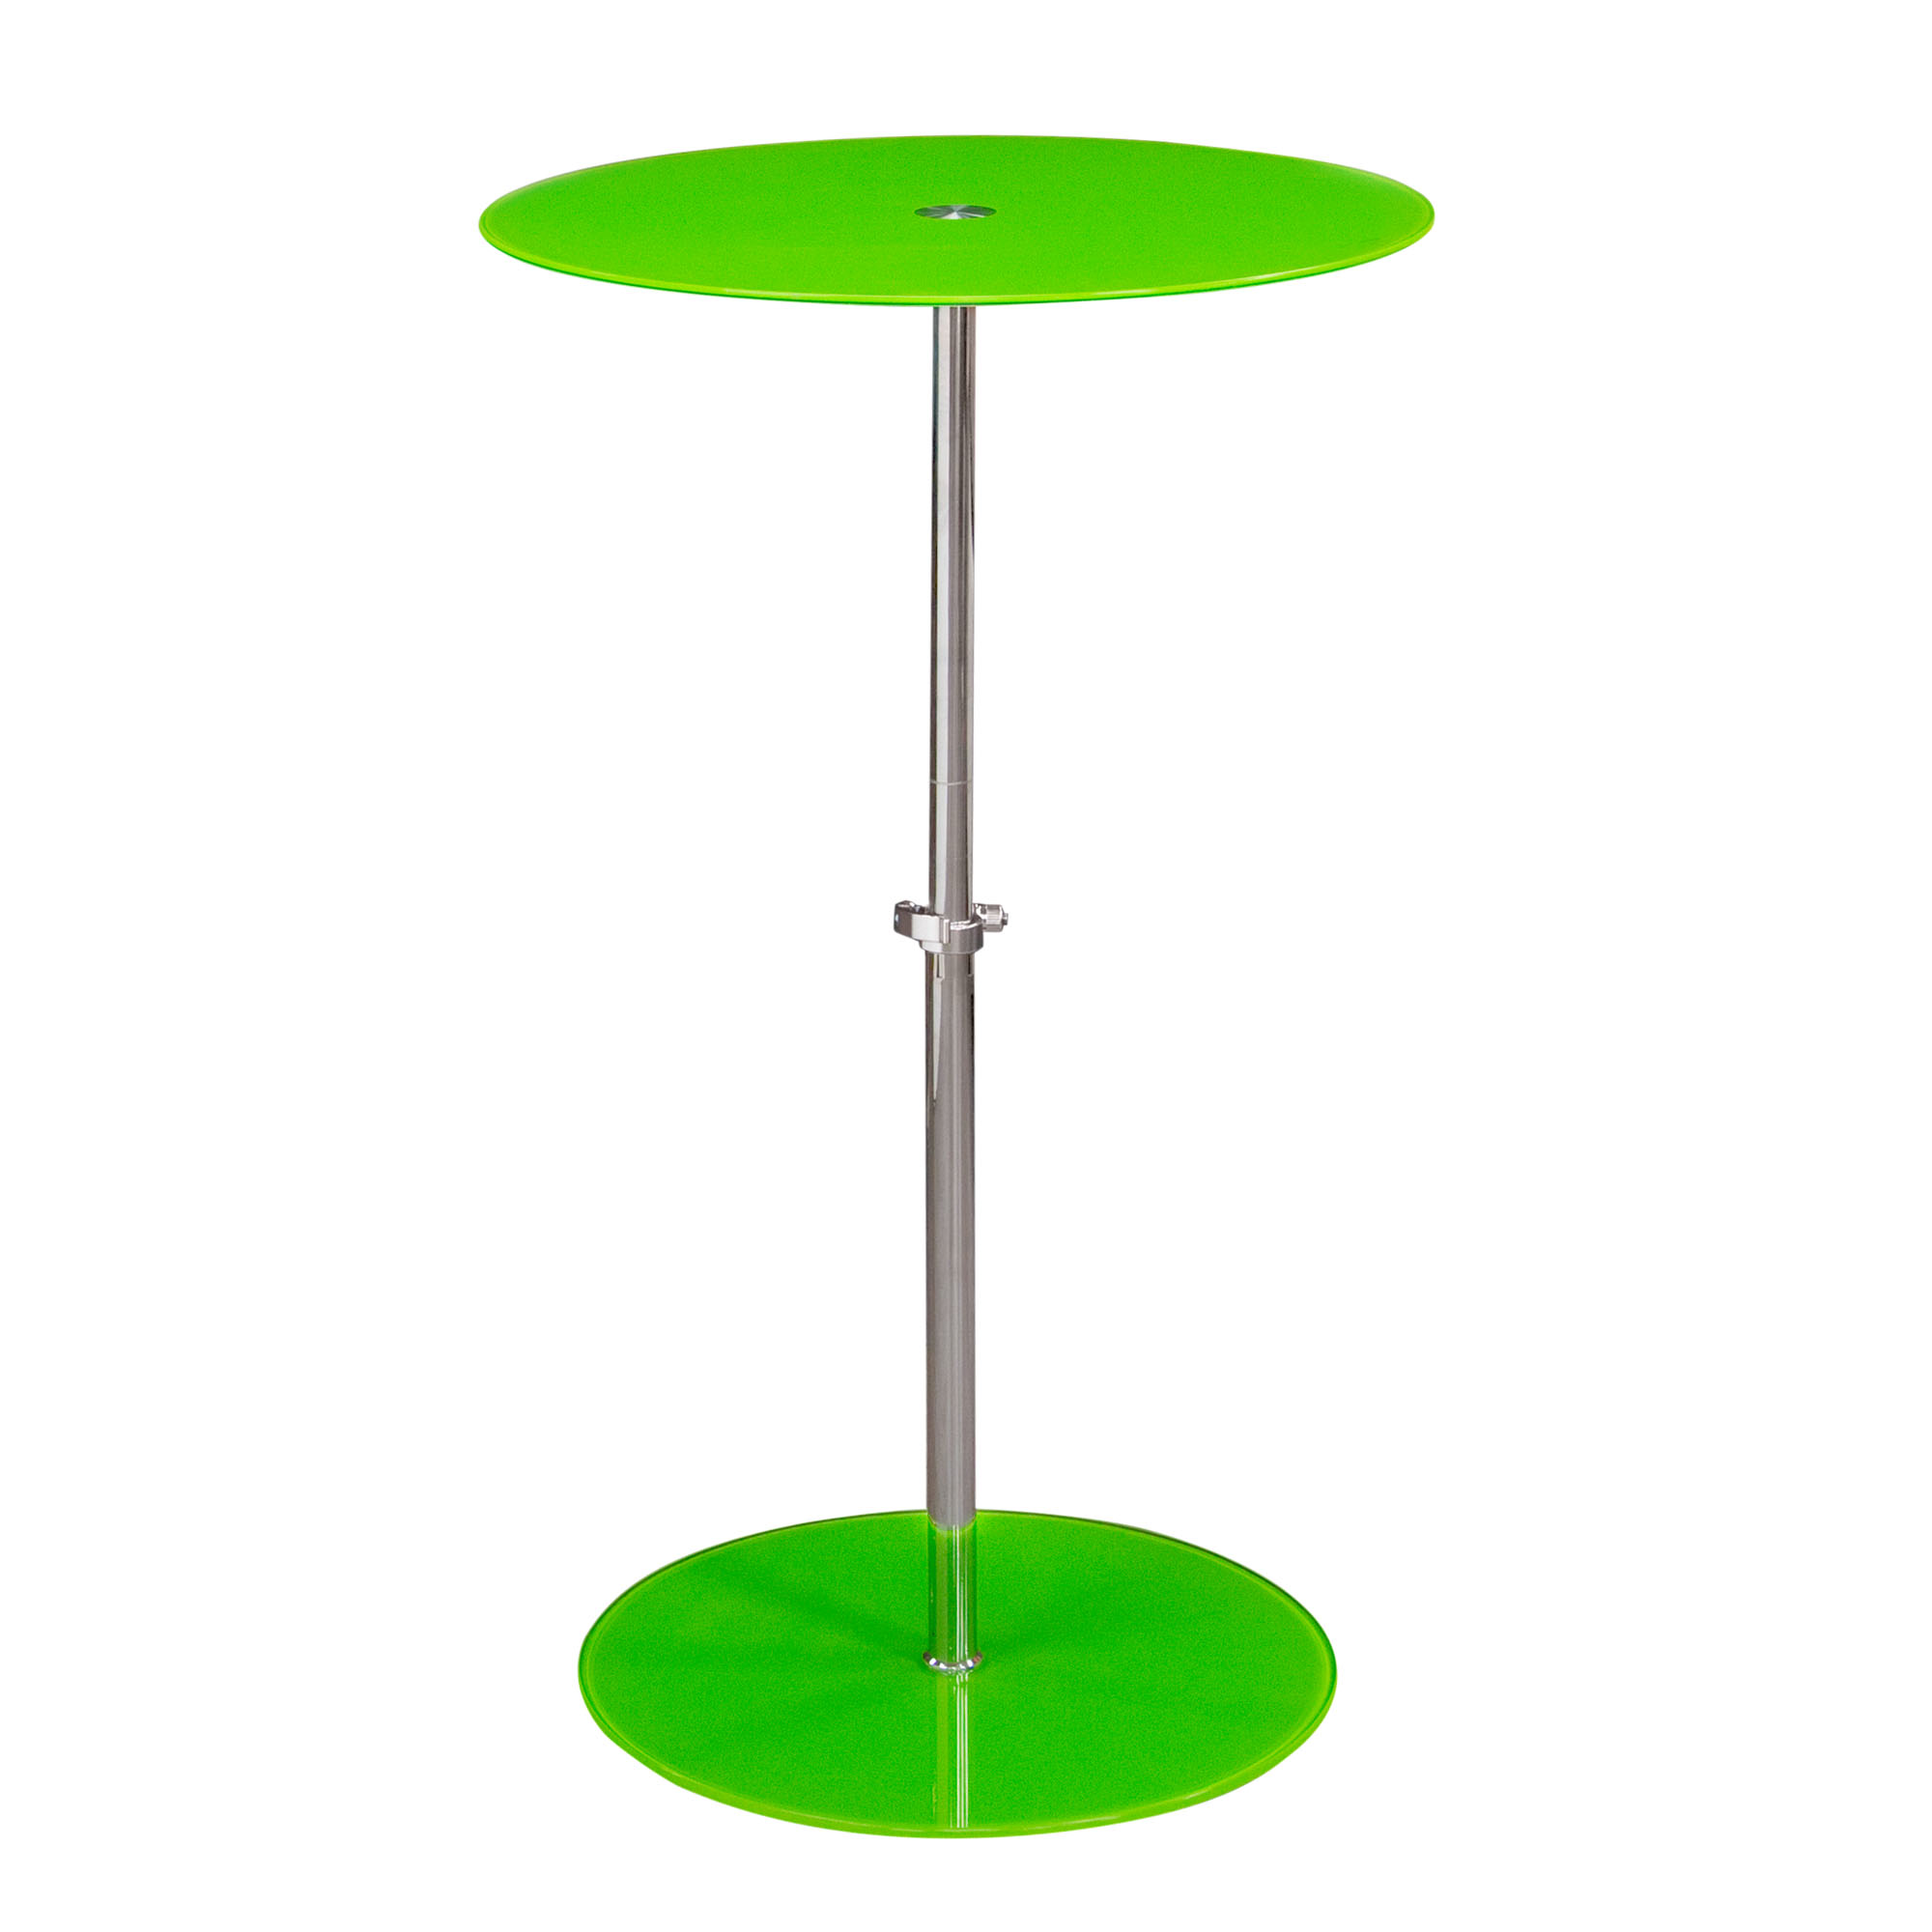 orbit adjustable height glass accent table green big orbitetgn home balcony chairs replacement mini lamp zinc coffee round cherry wood end tables chinese style lamps foot long